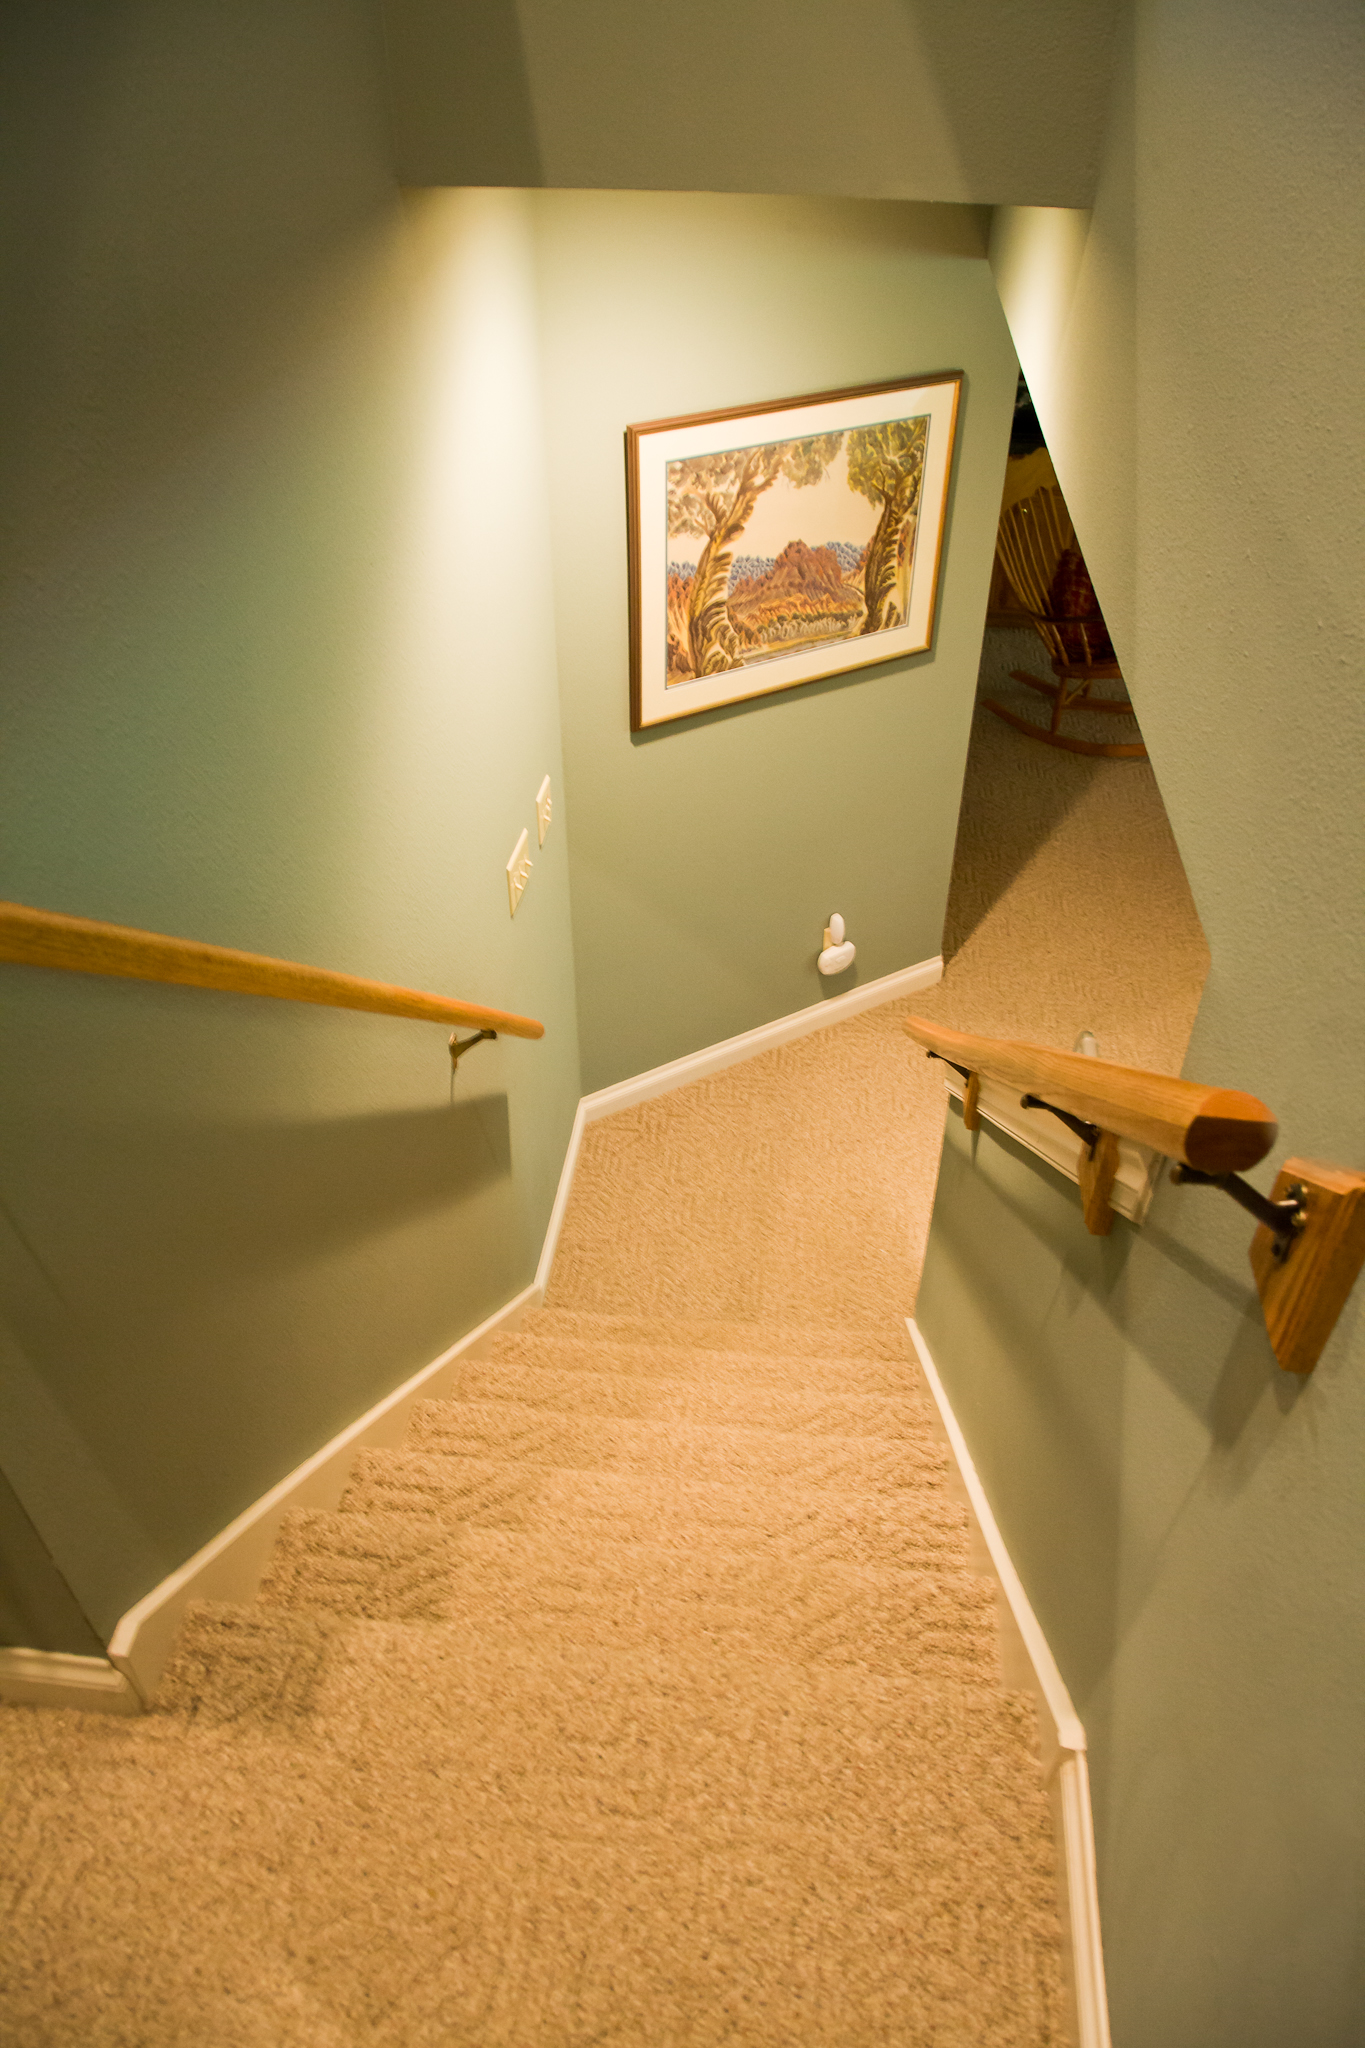 Double Stair Railings Installed by Smart Accessible Living